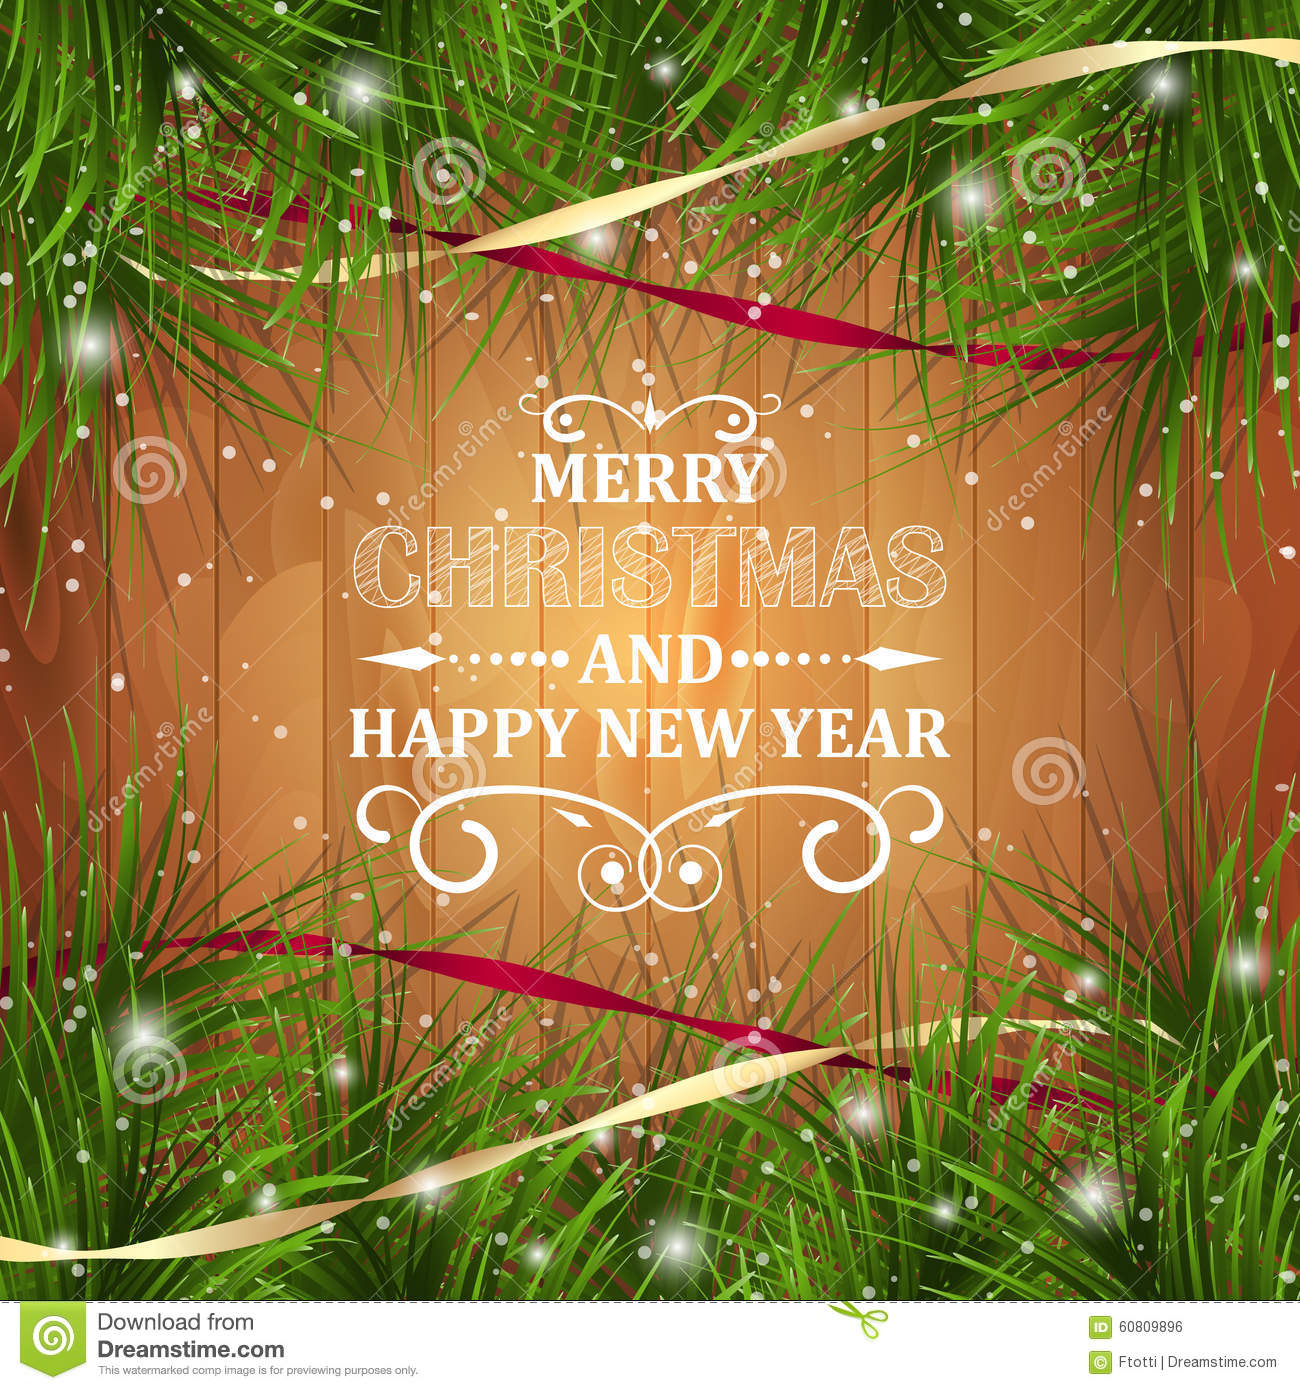 Merry Christmas And Happy New Year Greeting Card On Wooden Texture